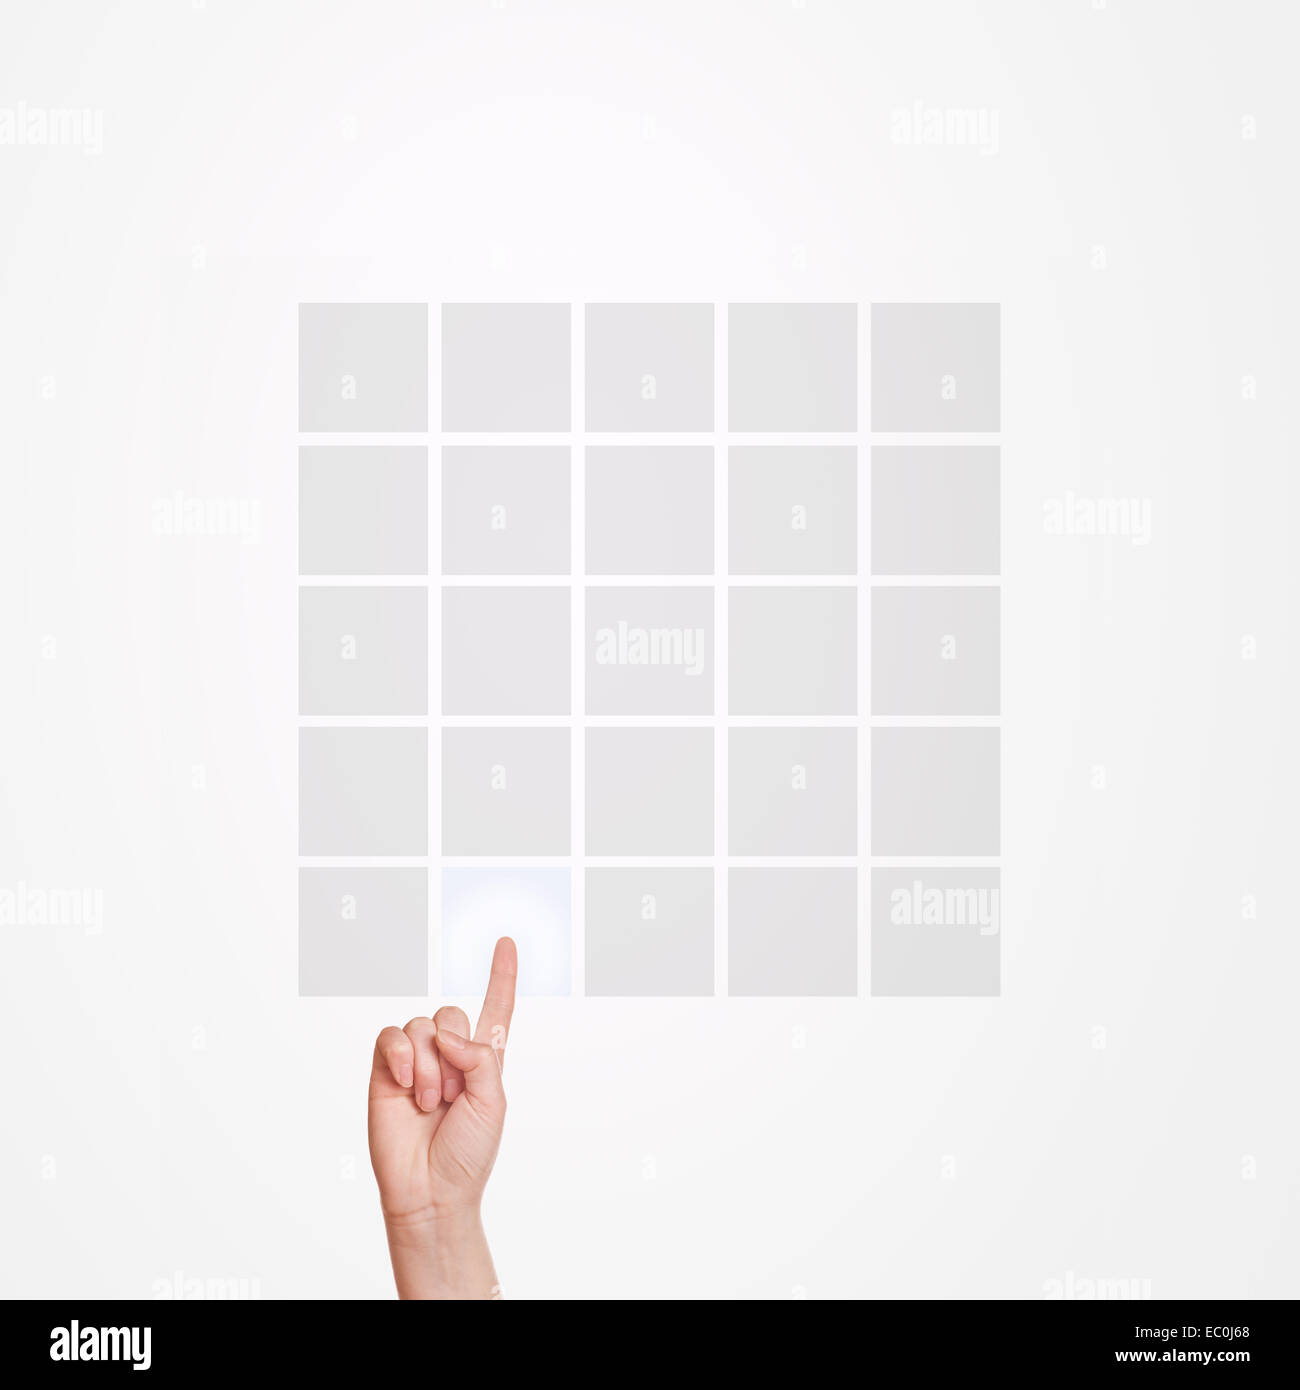 Caucasian female hand pressing 5x5 matrix touchscreen button with index finger. - Stock Image